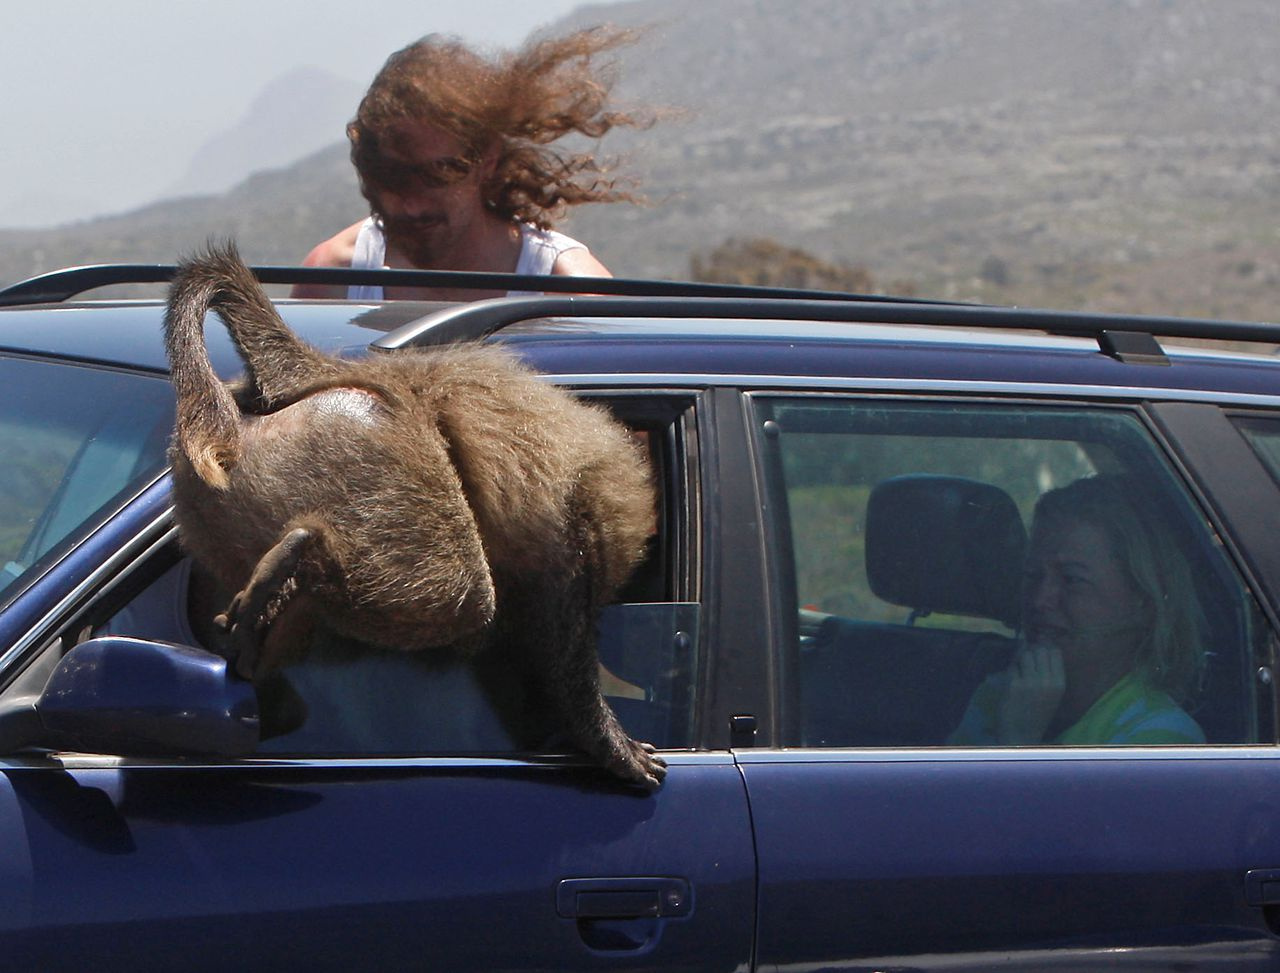 A baboon seen as it climbs inside a car at Cape Point on the outskirts of Cape Town, South Africa, Tuesday, Nov. 24, 2009. Visitors heading to South Africa premier holiday destination during the 2010 World Cup maybe worried about becoming victims of the country's high crime rate but they are more likely to find themselves robbed or mugged by a rather furry kind of felon: baboons. (Photo/Schalk van Zuydam)